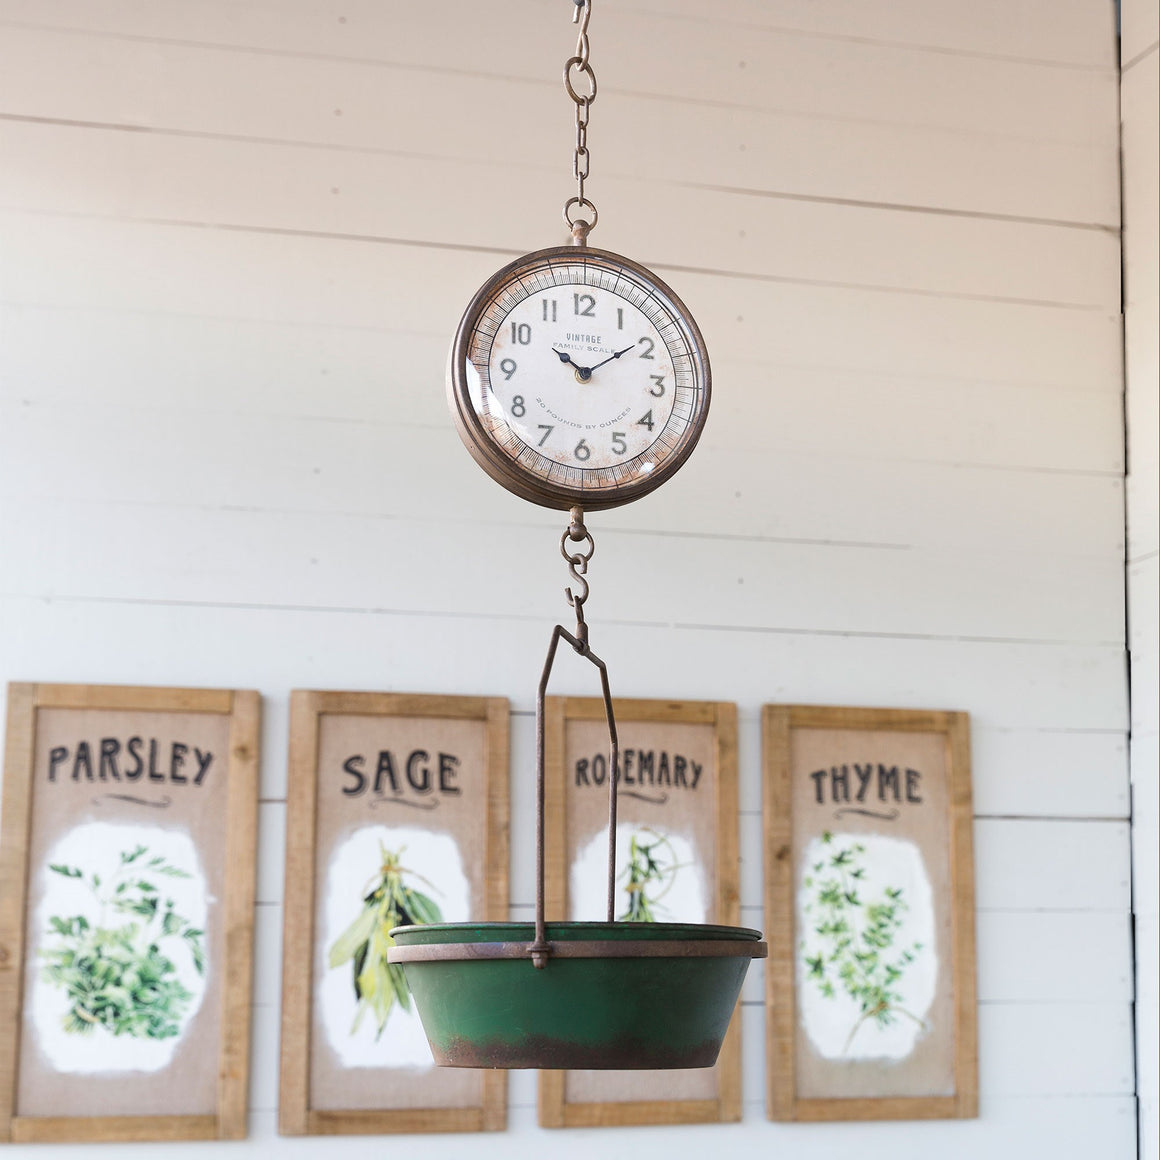 Green Hanging Grocery Scale Clock